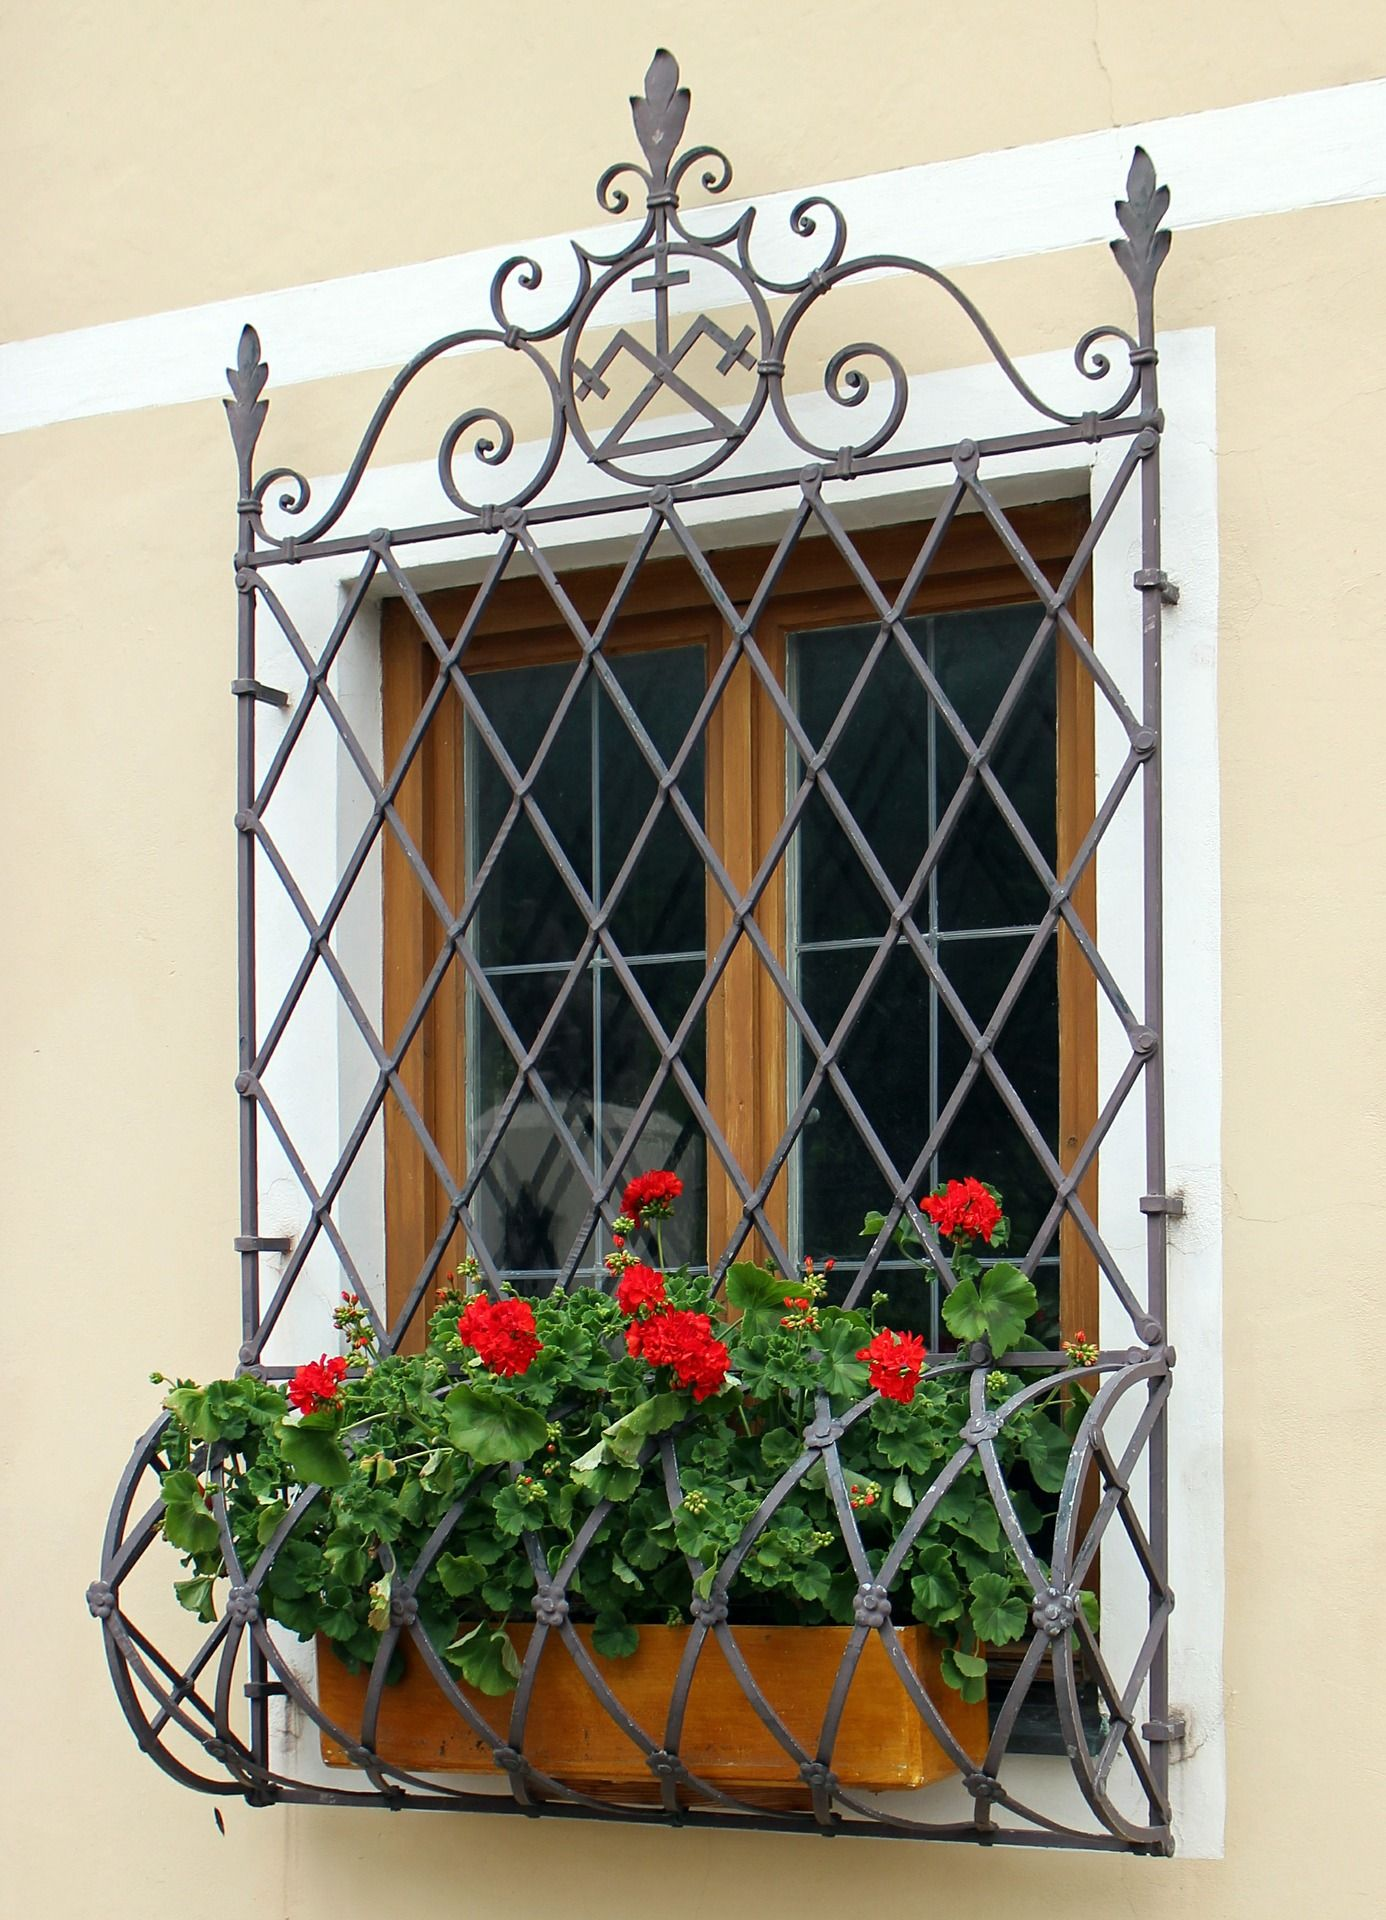 Do You Want Iron Decorations On Your Window Contact Xtreme Iron